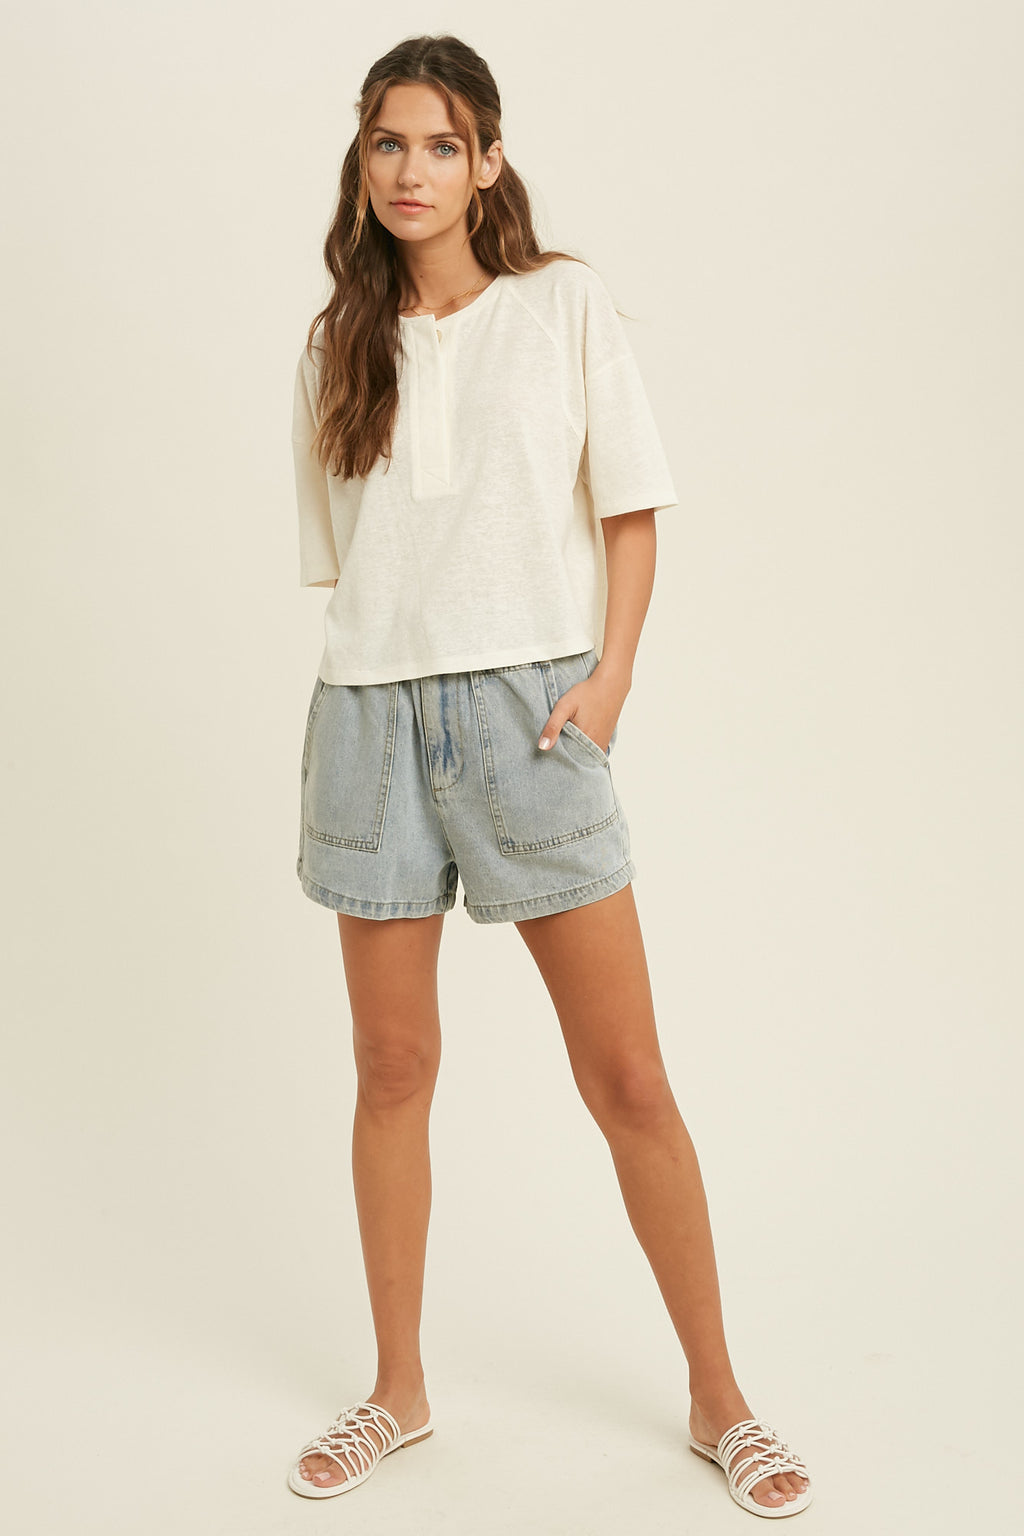 Drew Cotton Relaxed Button Down Tee - Cream